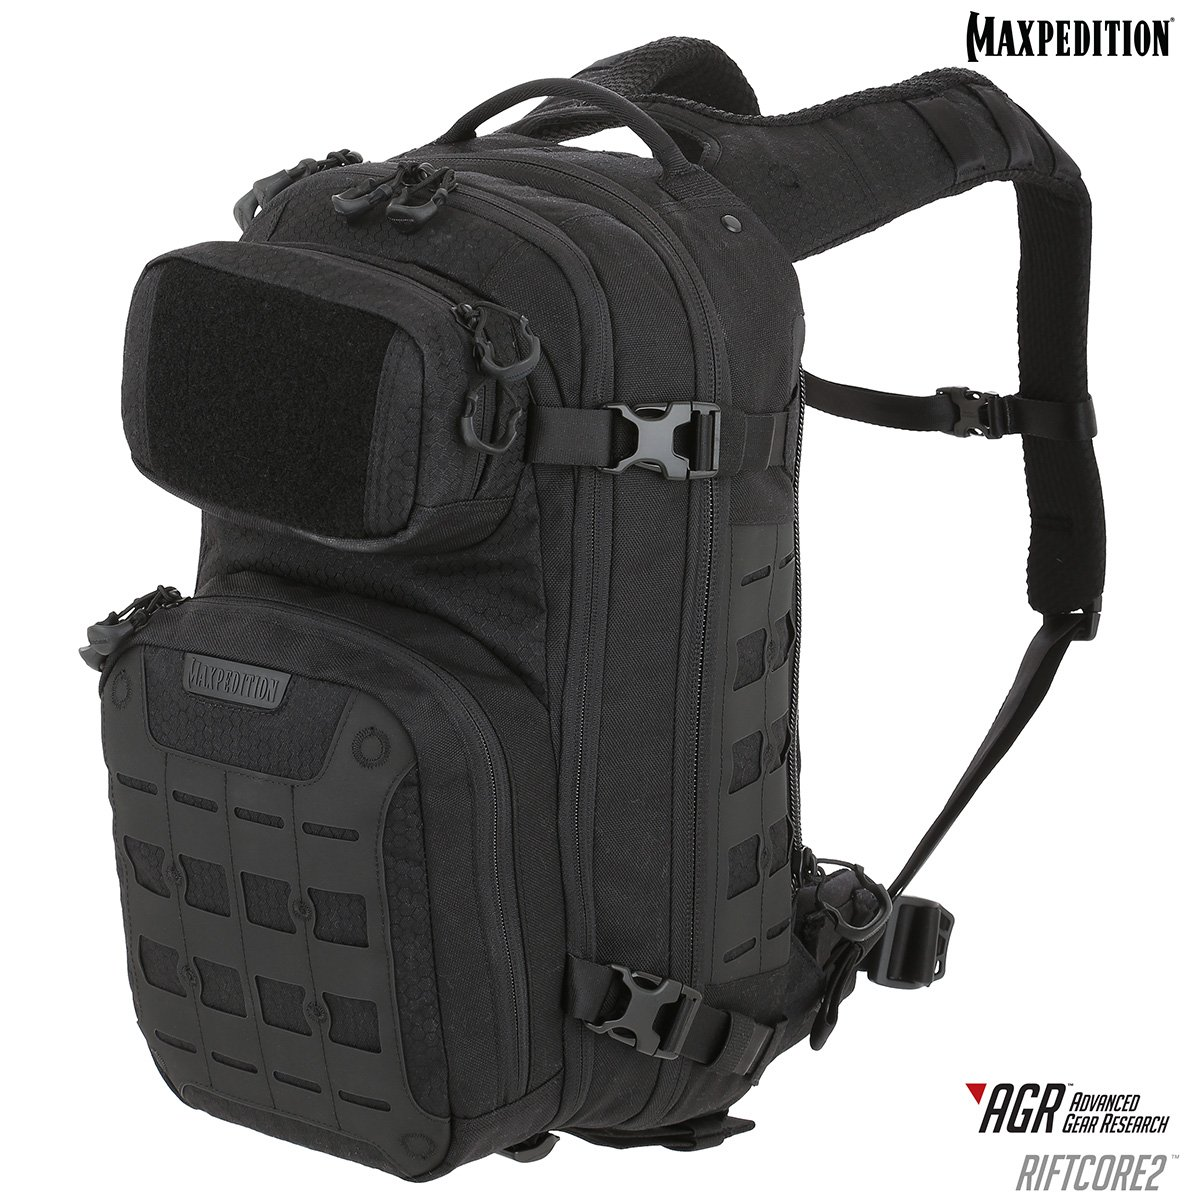 Balo Maxpedition Riftcore v2.0 CCW-Enabled 23L - Black